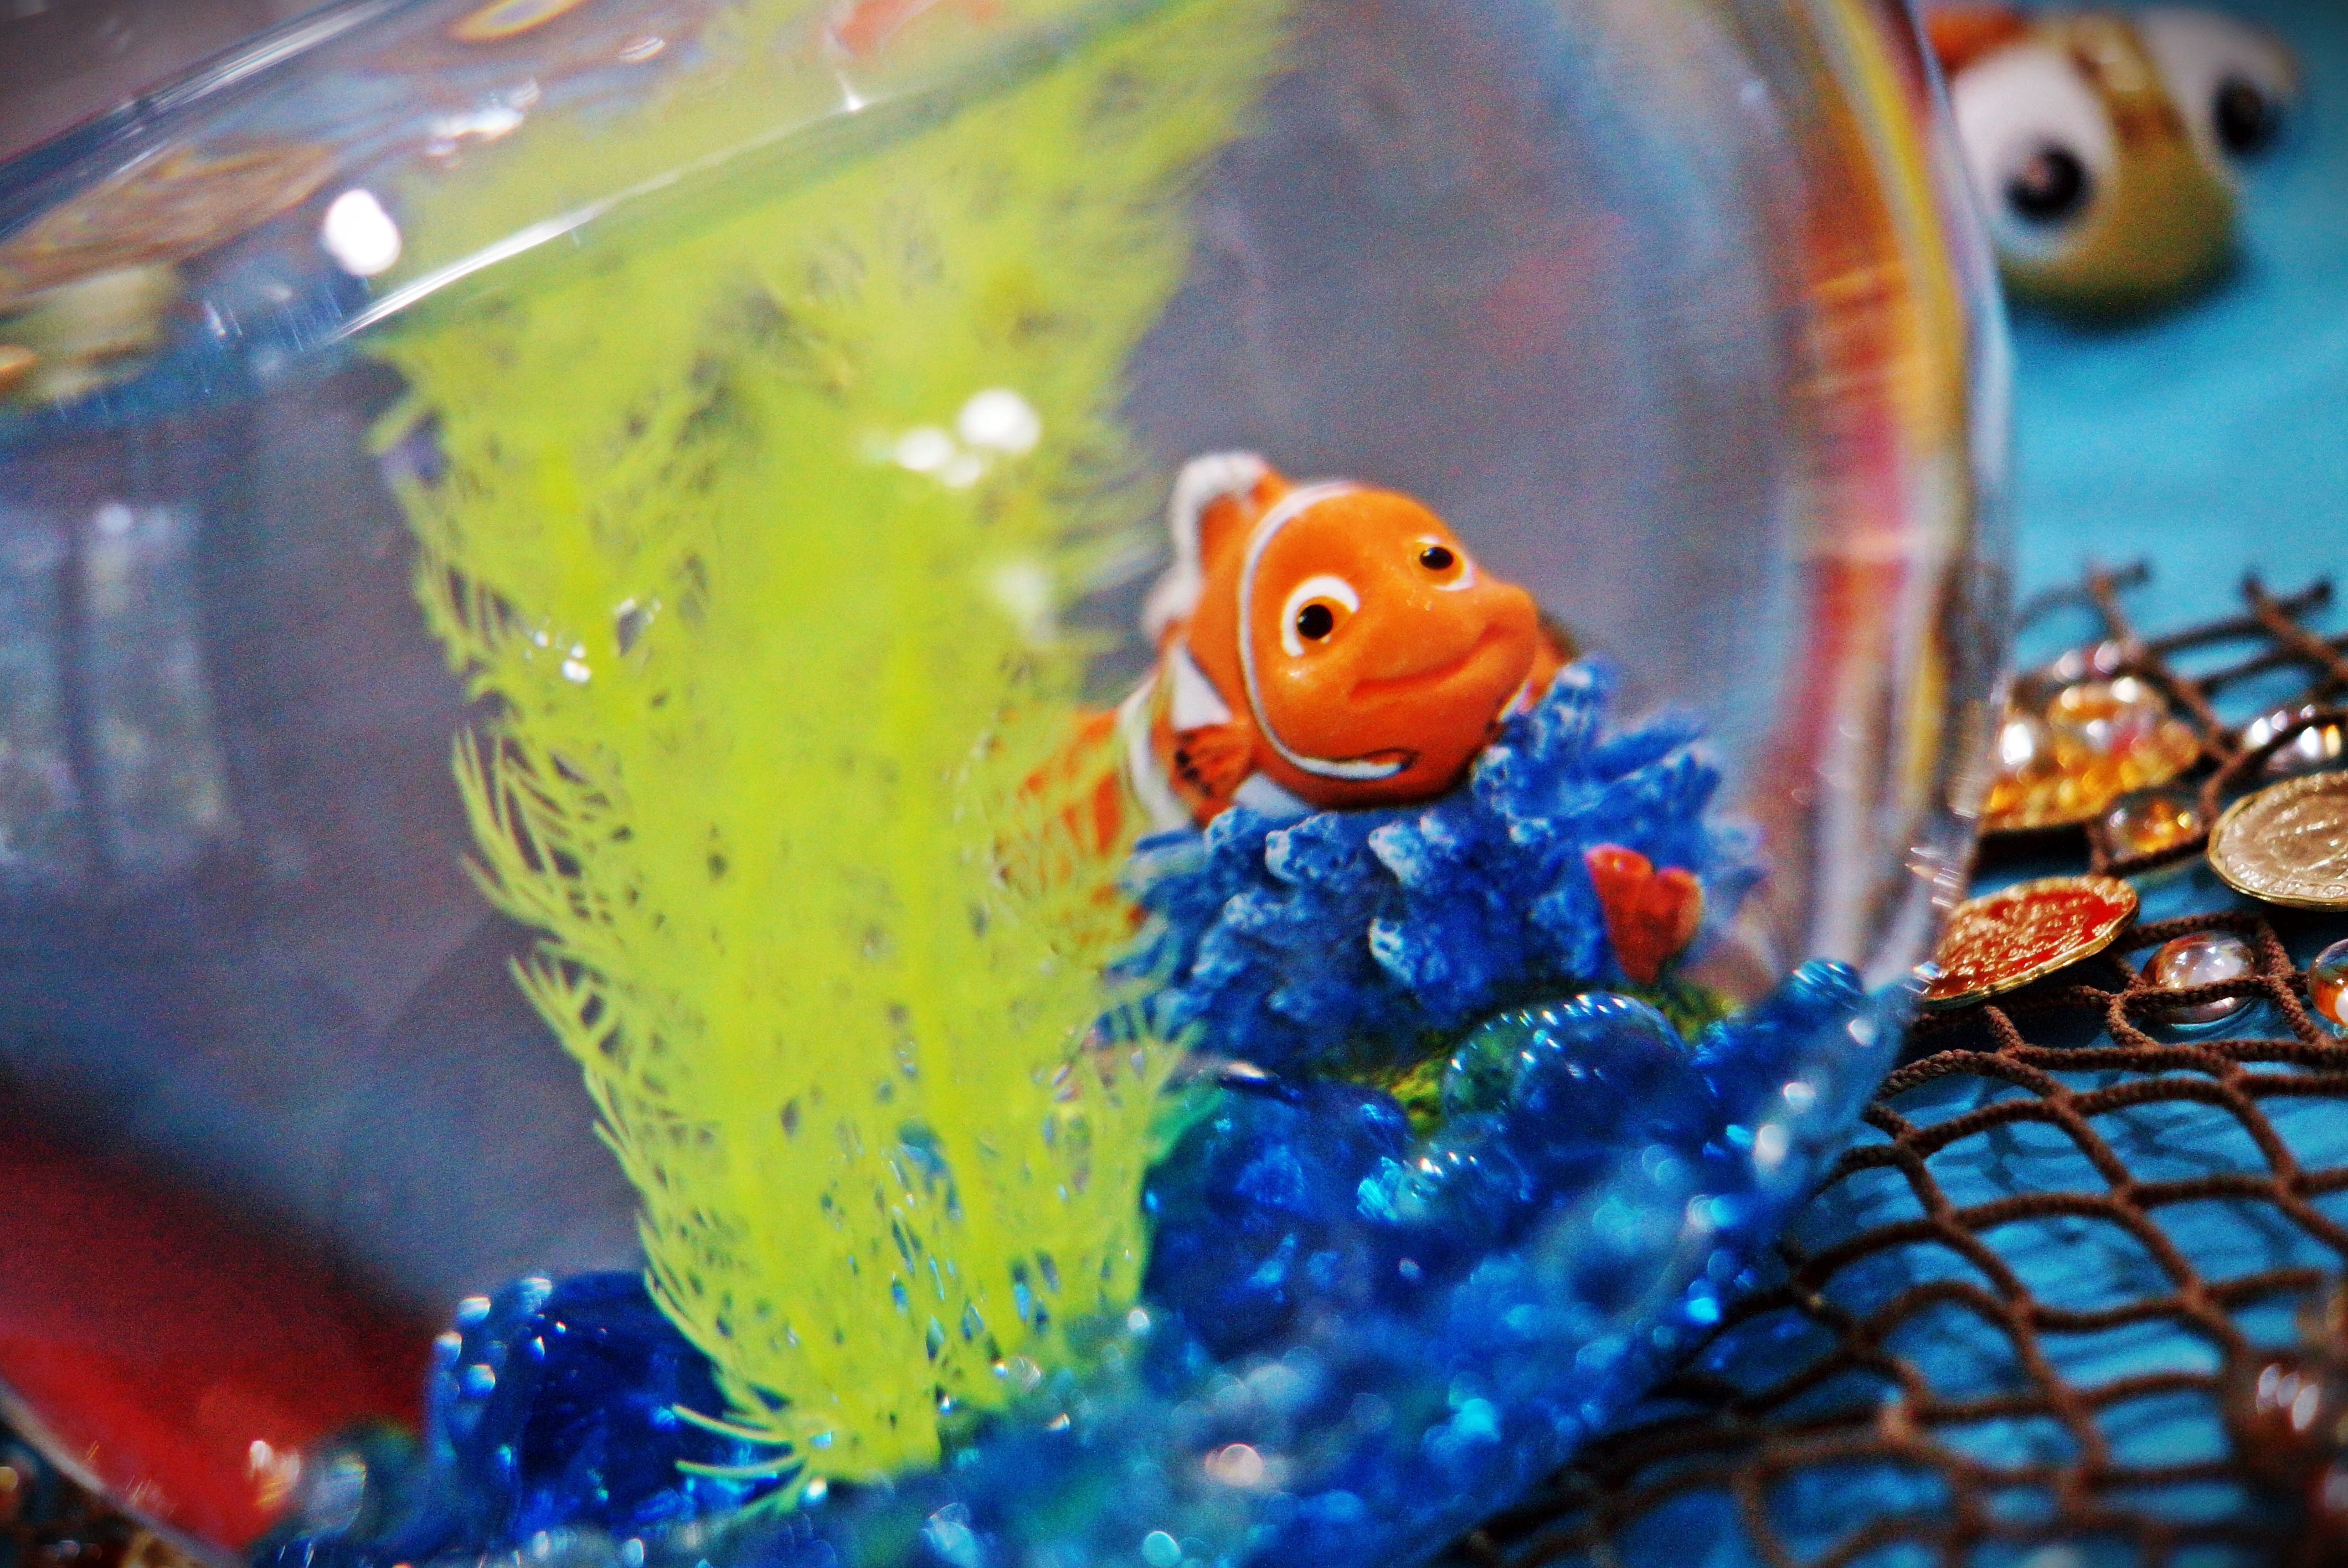 Finding Nemo Fish Bowl Centerpiece